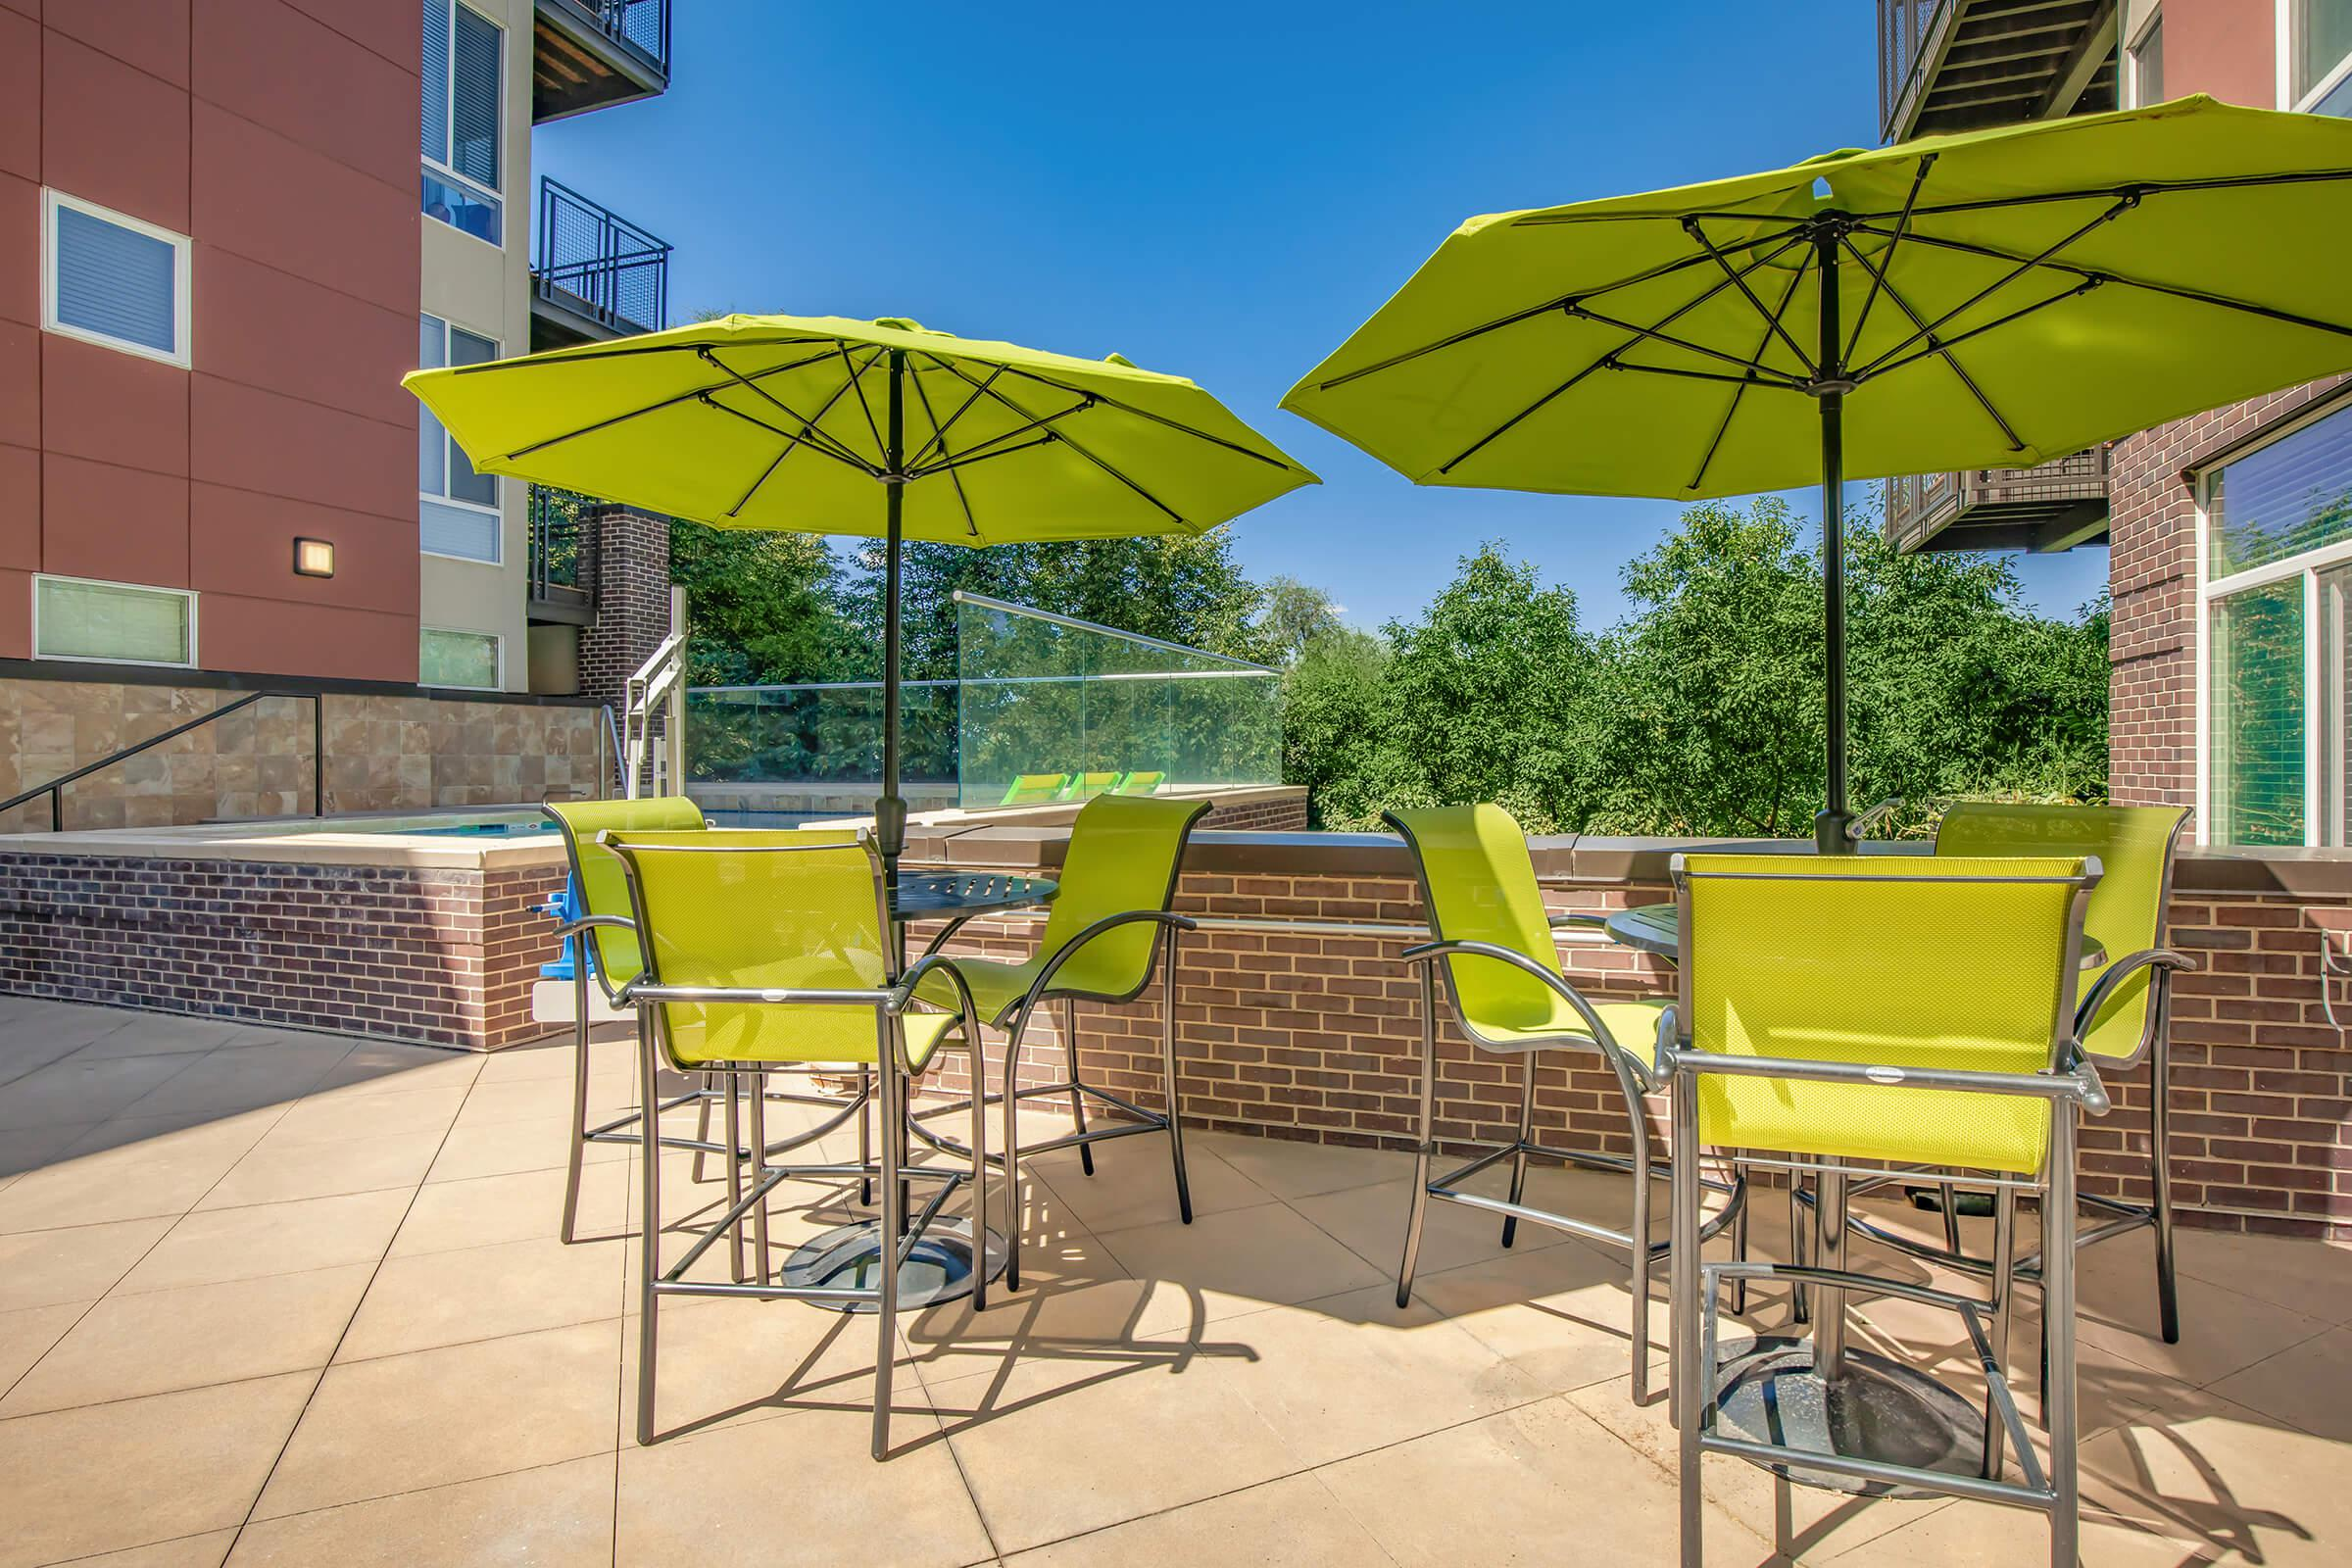 a group of lawn chairs sitting on top of a yellow umbrella